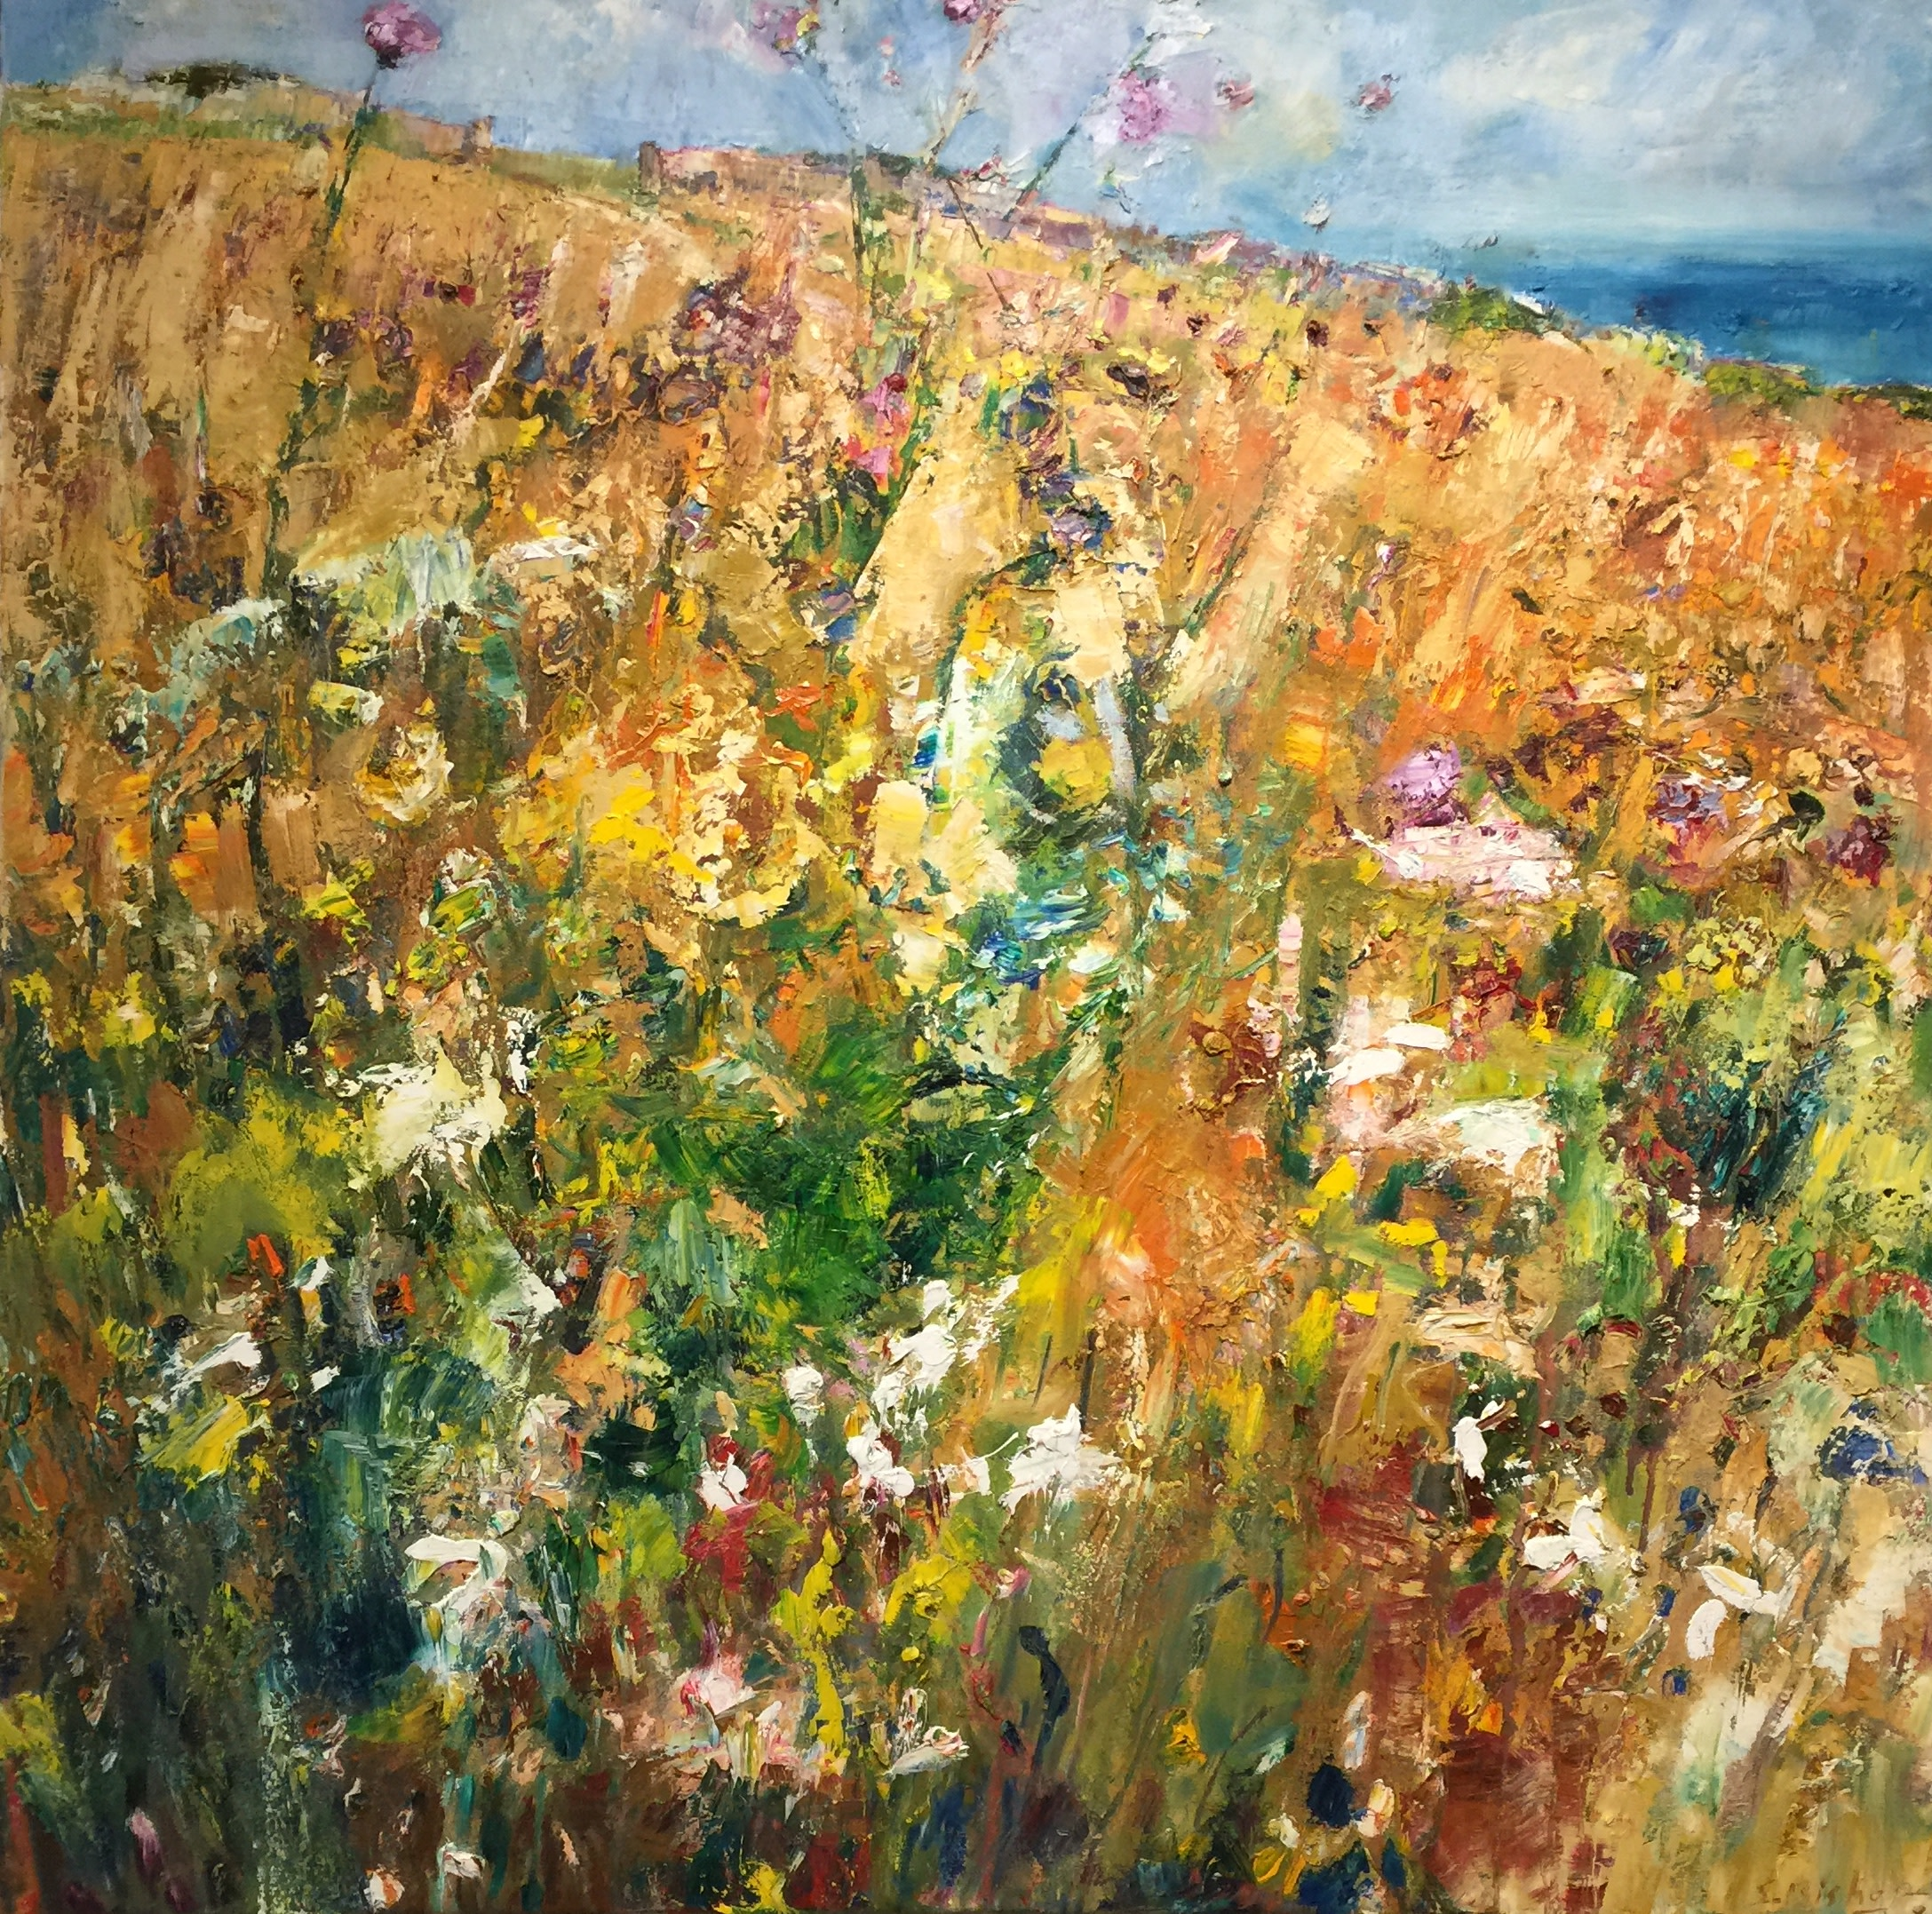 "<span class=""link fancybox-details-link""><a href=""/artists/49-stephen-bishop/works/2427-stephen-bishop-summer-scorched-field/"">View Detail Page</a></span><div class=""artist""><strong>Stephen Bishop</strong></div> <div class=""title""><em>Summer Scorched Field</em></div> <div class=""medium"">Oil on Canvas</div> <div class=""dimensions"">101 x 101 cm </div><div class=""price"">£4,000.00</div><div class=""copyright_line"">Copyright The Artist</div>"